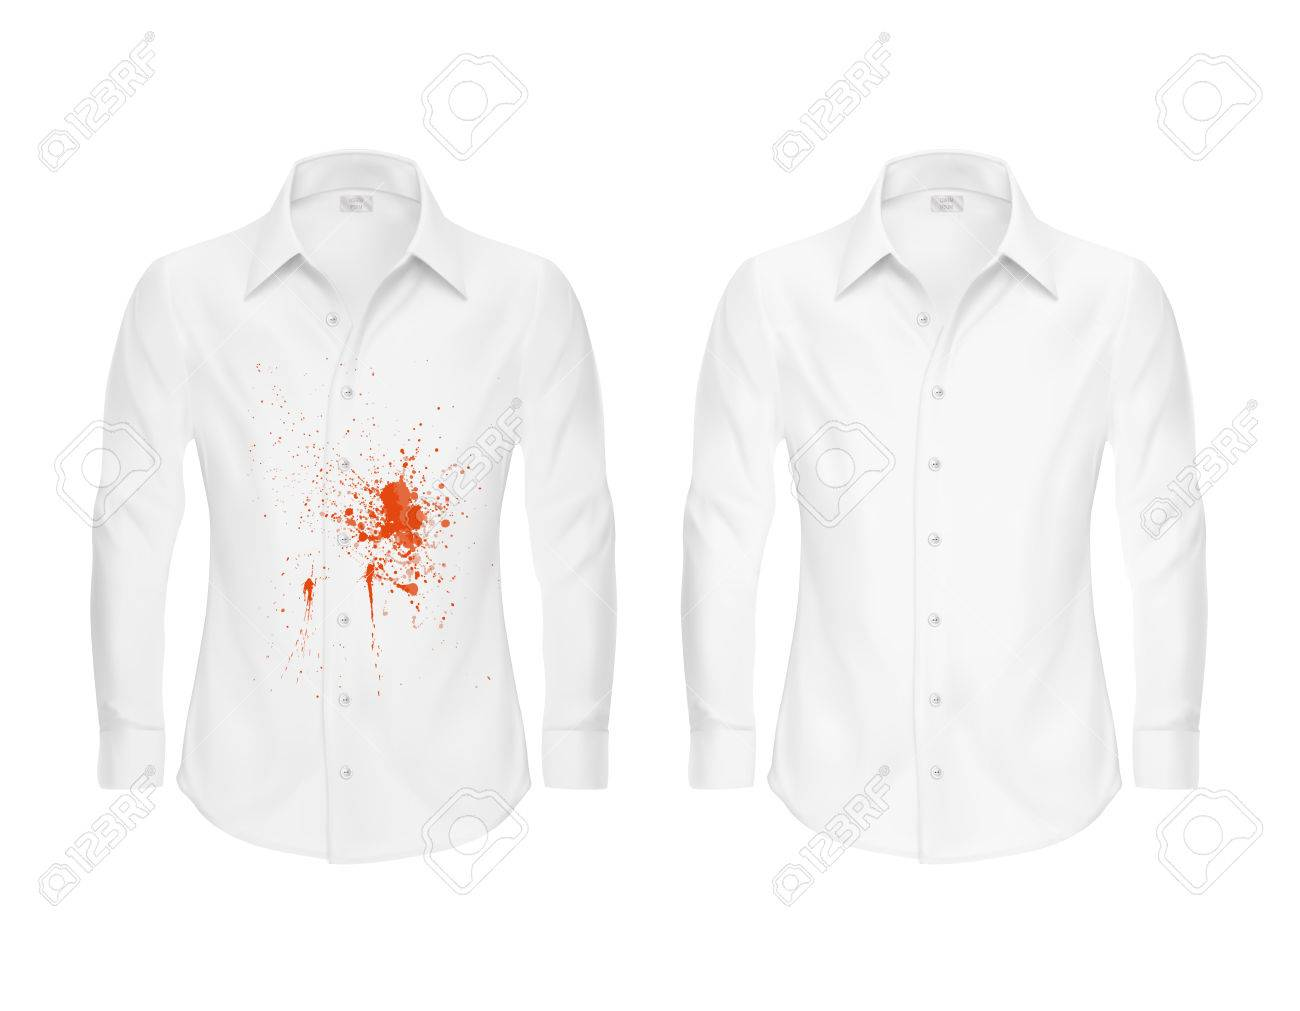 Set of vector illustrations of a white shirt with a red stain from ketchup d51497b923999